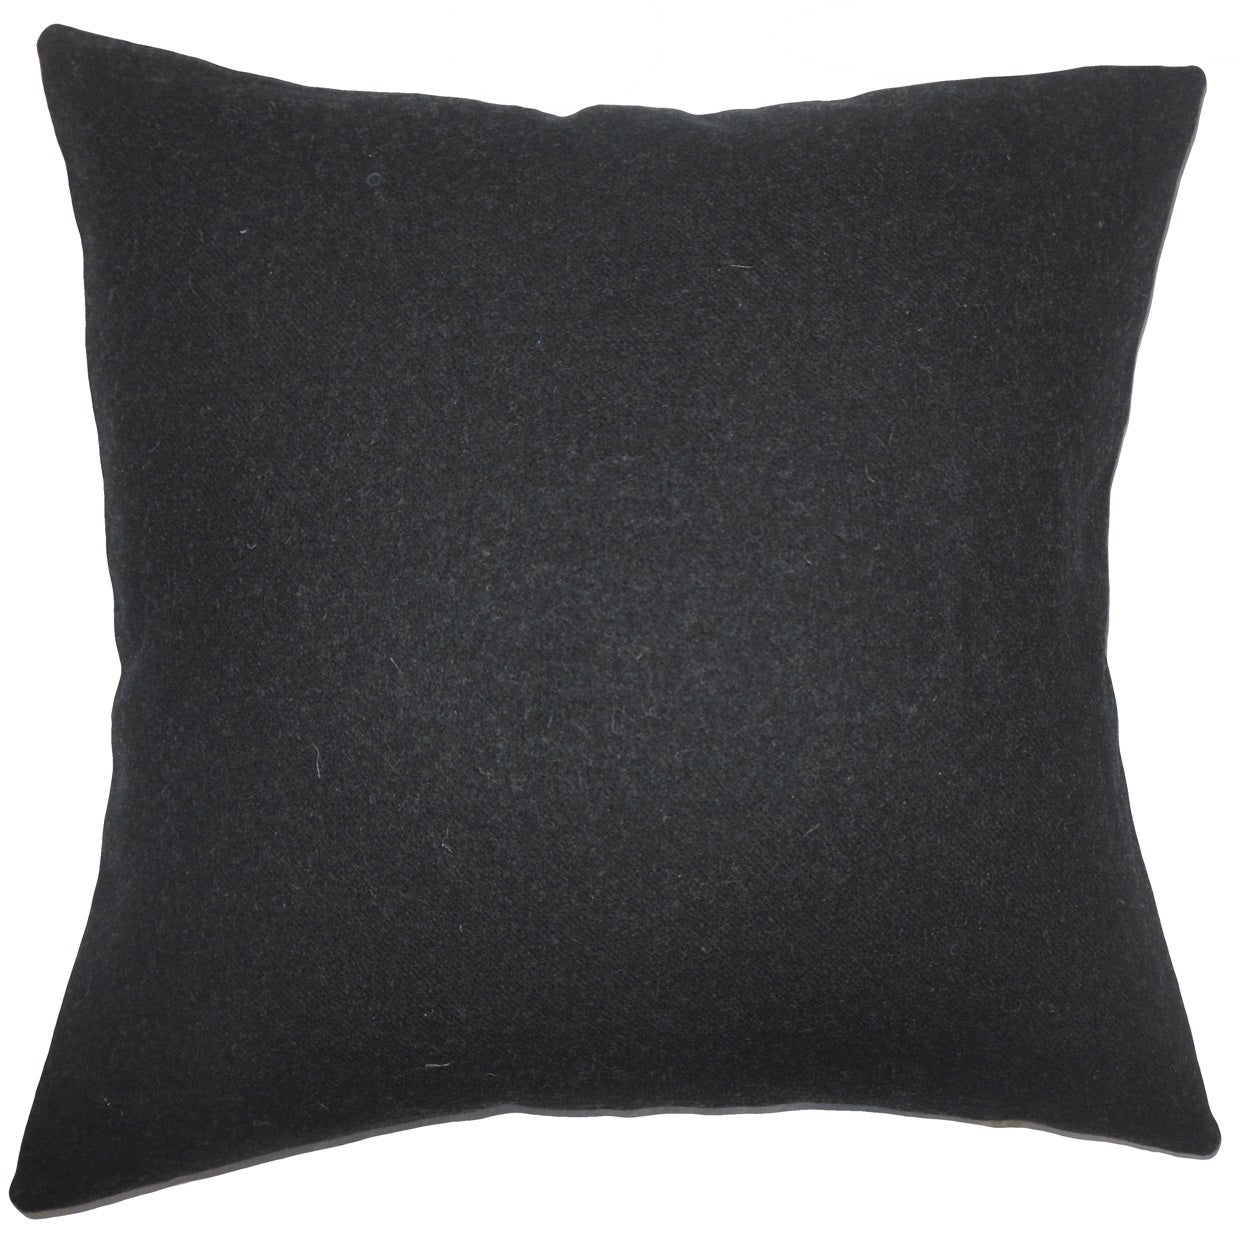 Eire Solid Floor Pillow Black